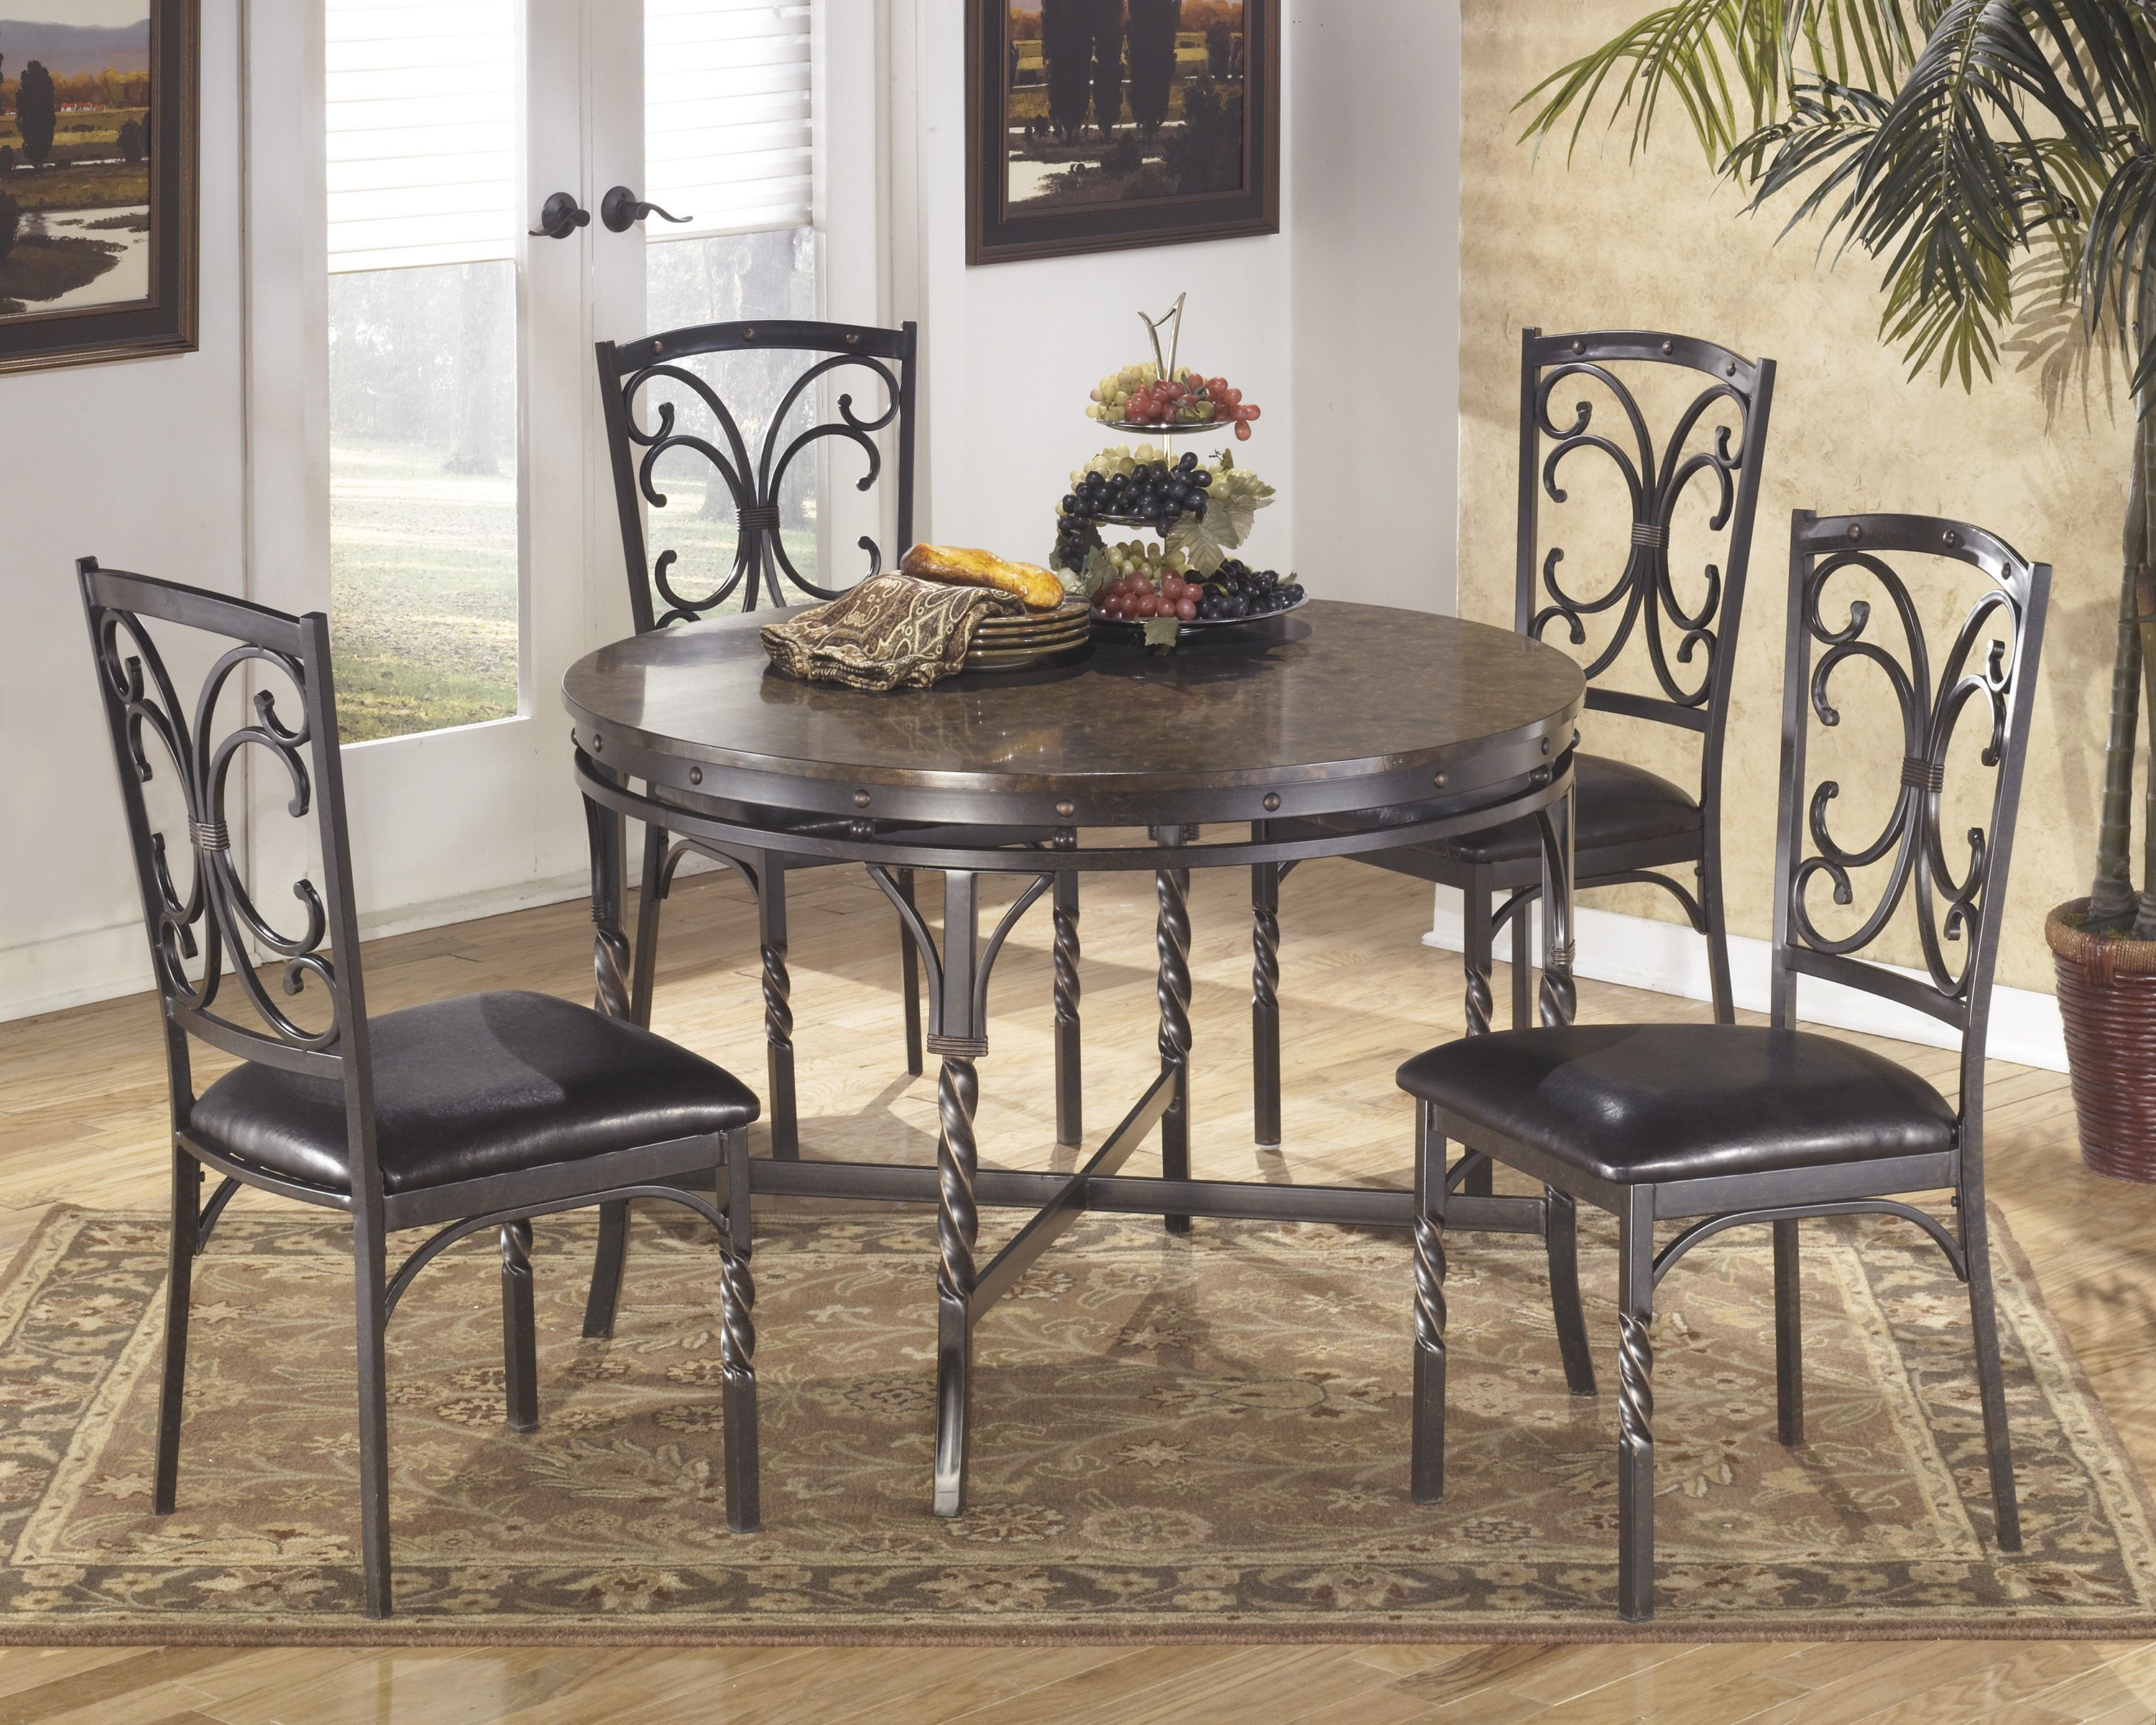 5-Piece dinette set under $500 @Evansfurn & 5-Piece dinette set under $500 @Evansfurn | Our Showroom | Pinterest ...